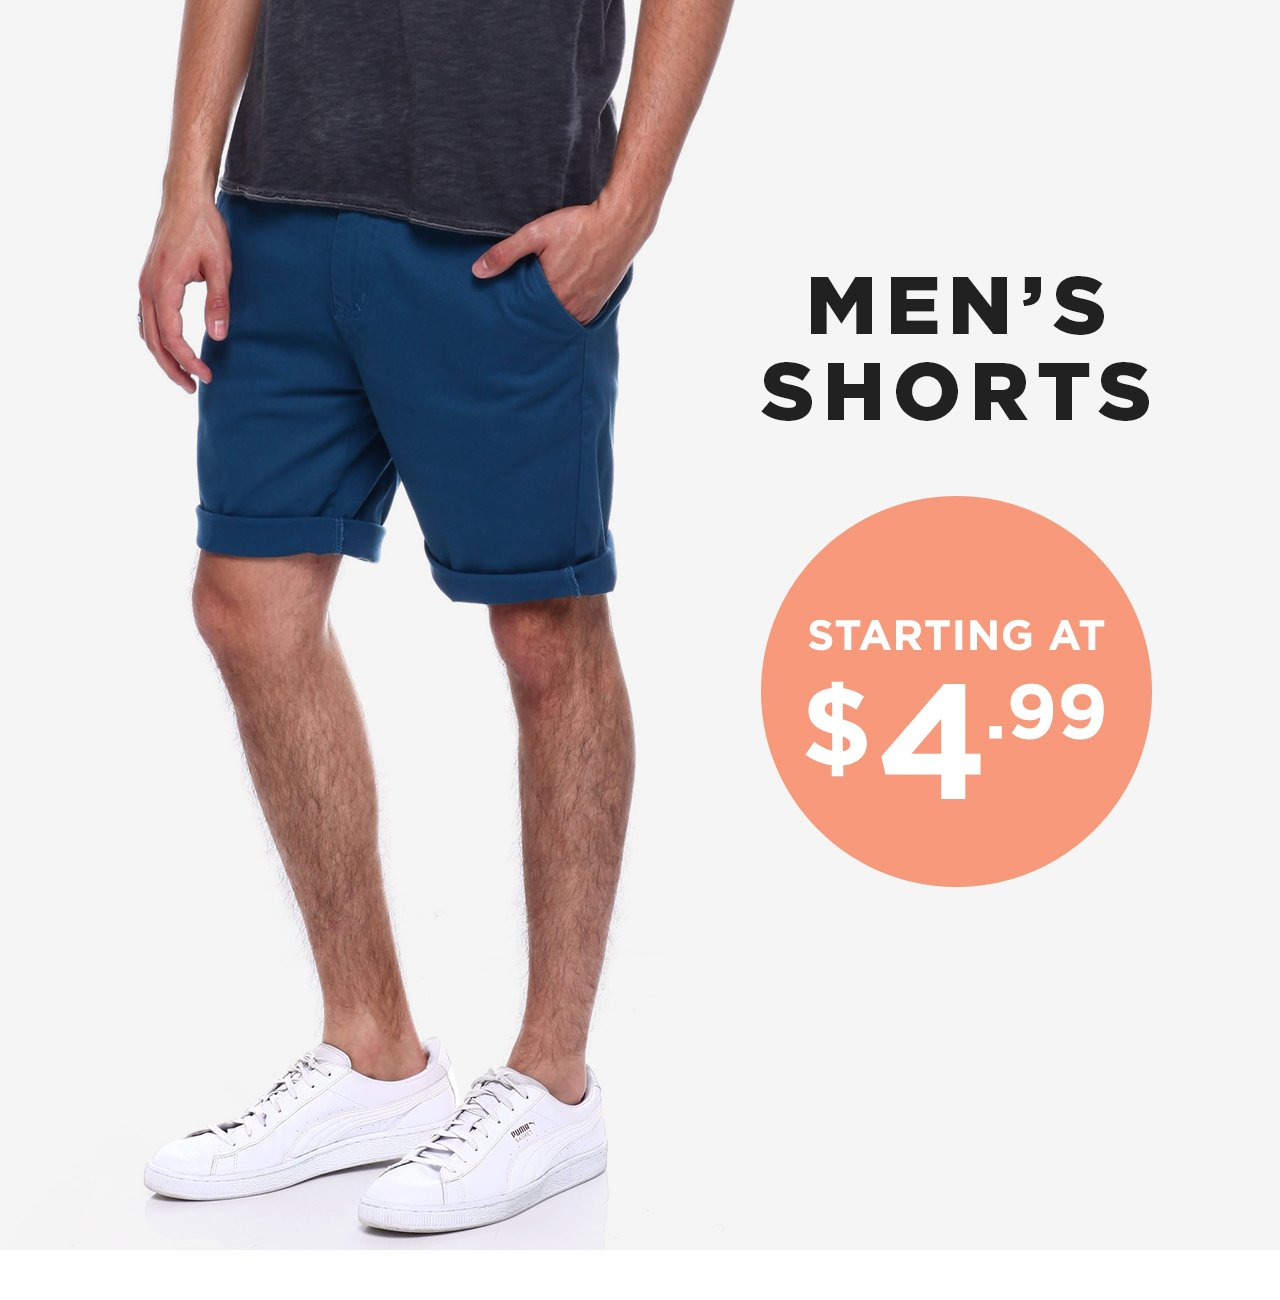 Shop Men's Shorts starting at $4.99